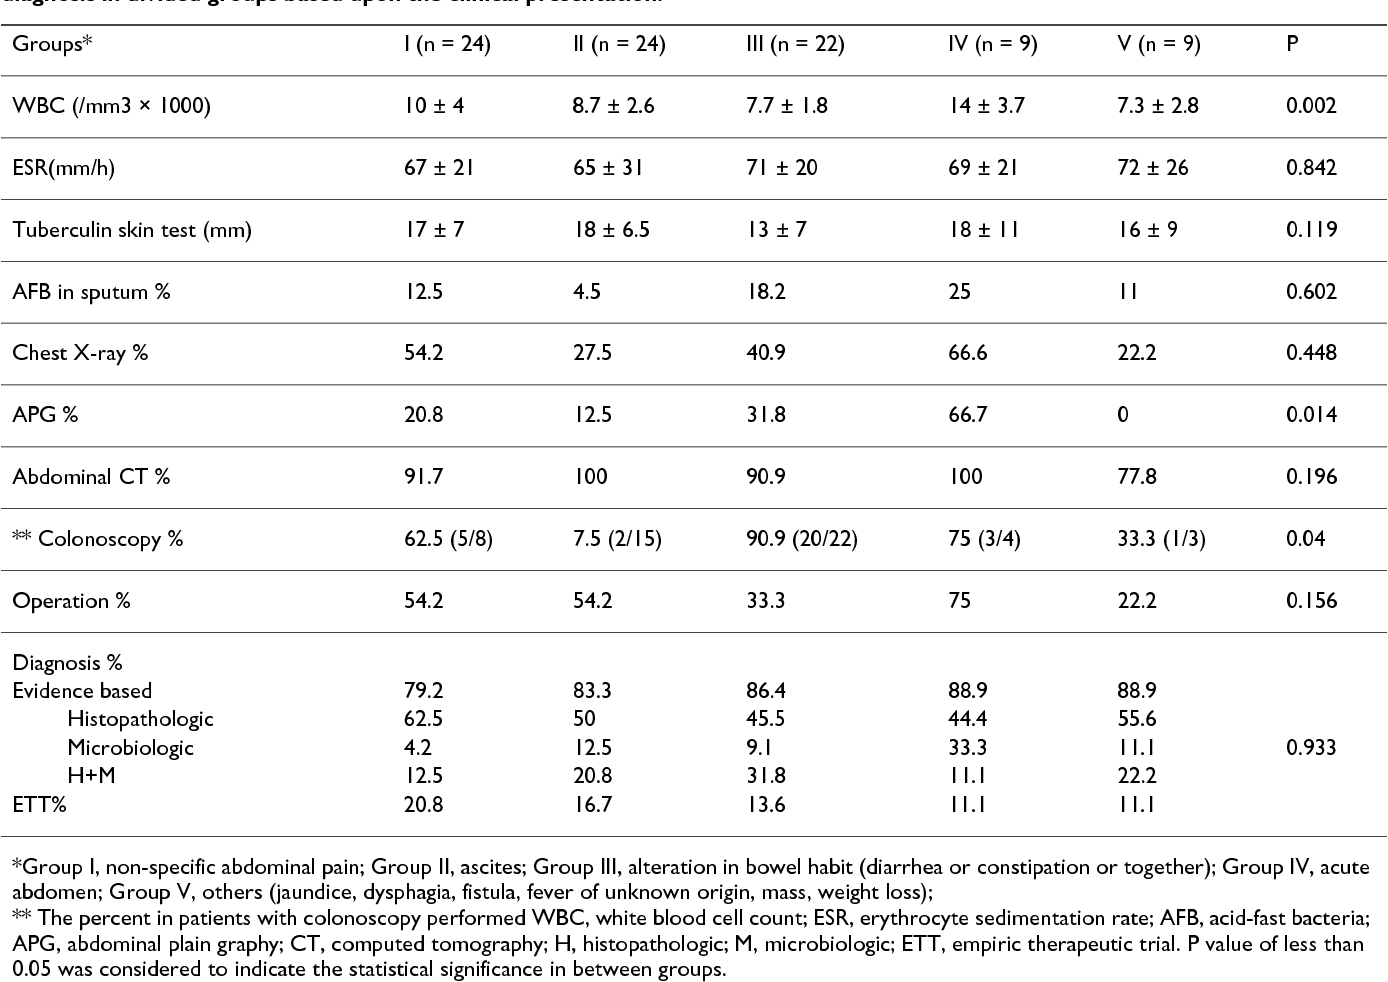 Table 4: The results of the diagnostic laboratory methods, the rate of abnormality in imaging and invasive methods, and definitive diagnosis in divided groups based upon the clinical presentation.